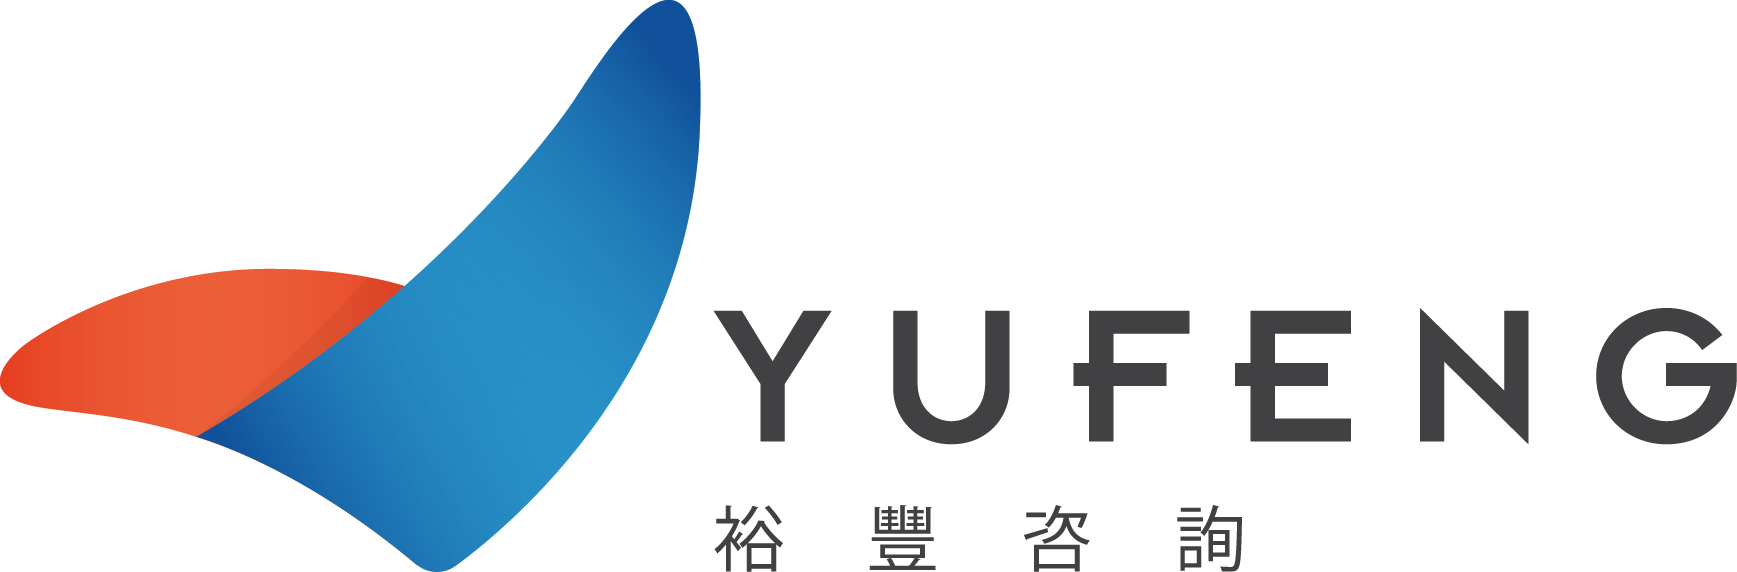 Yufeng Consulting